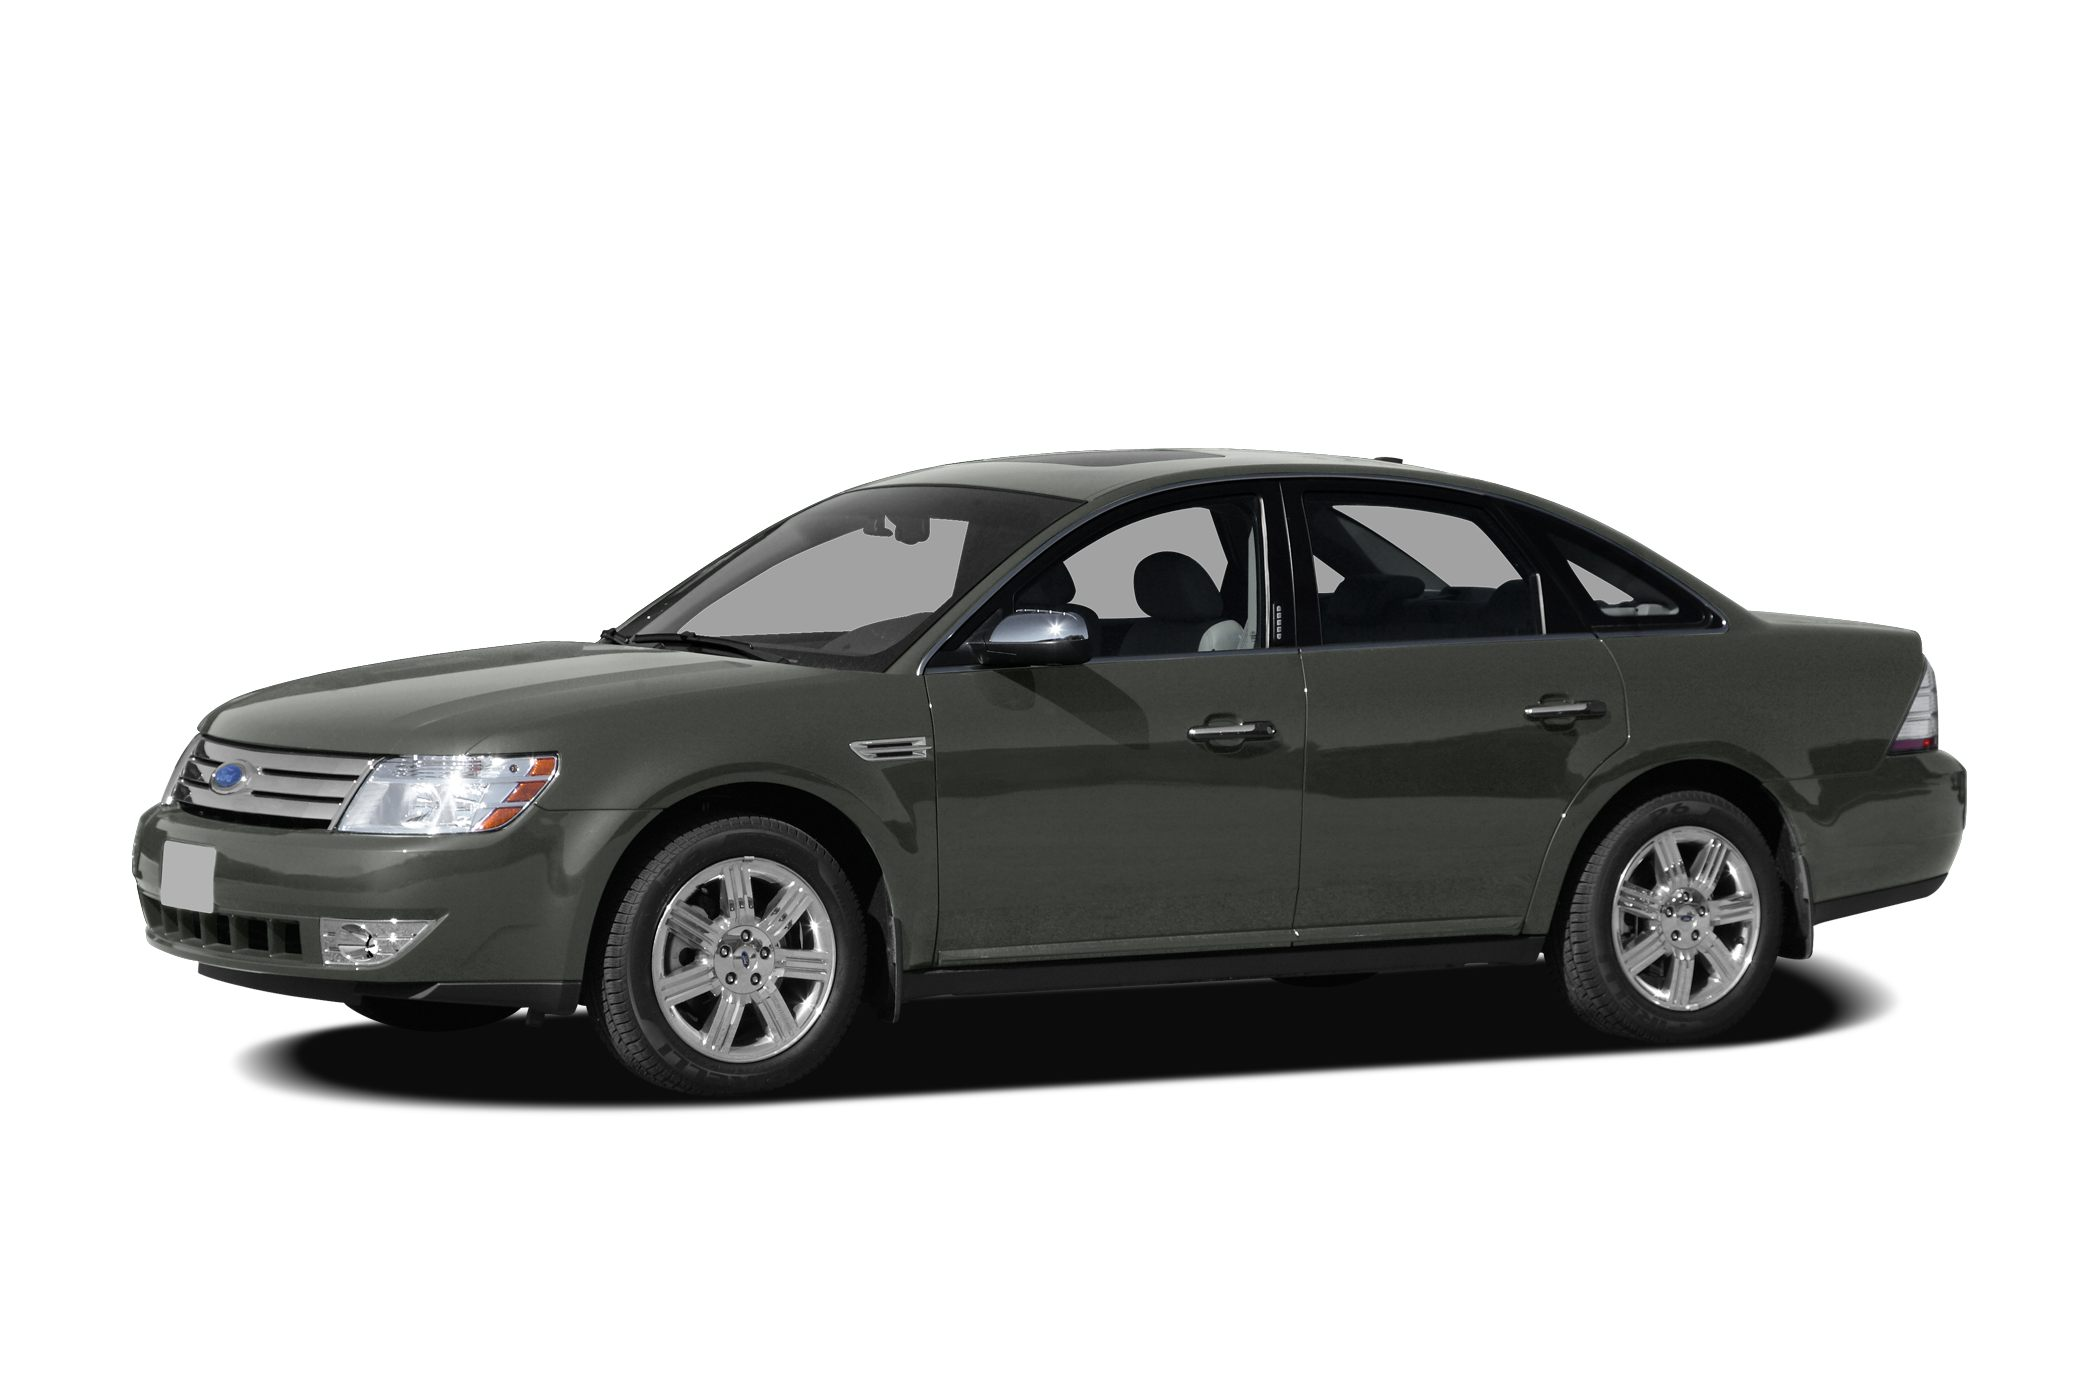 2008 Ford Taurus SEL Sedan for sale in Vinita for $9,999 with 82,792 miles